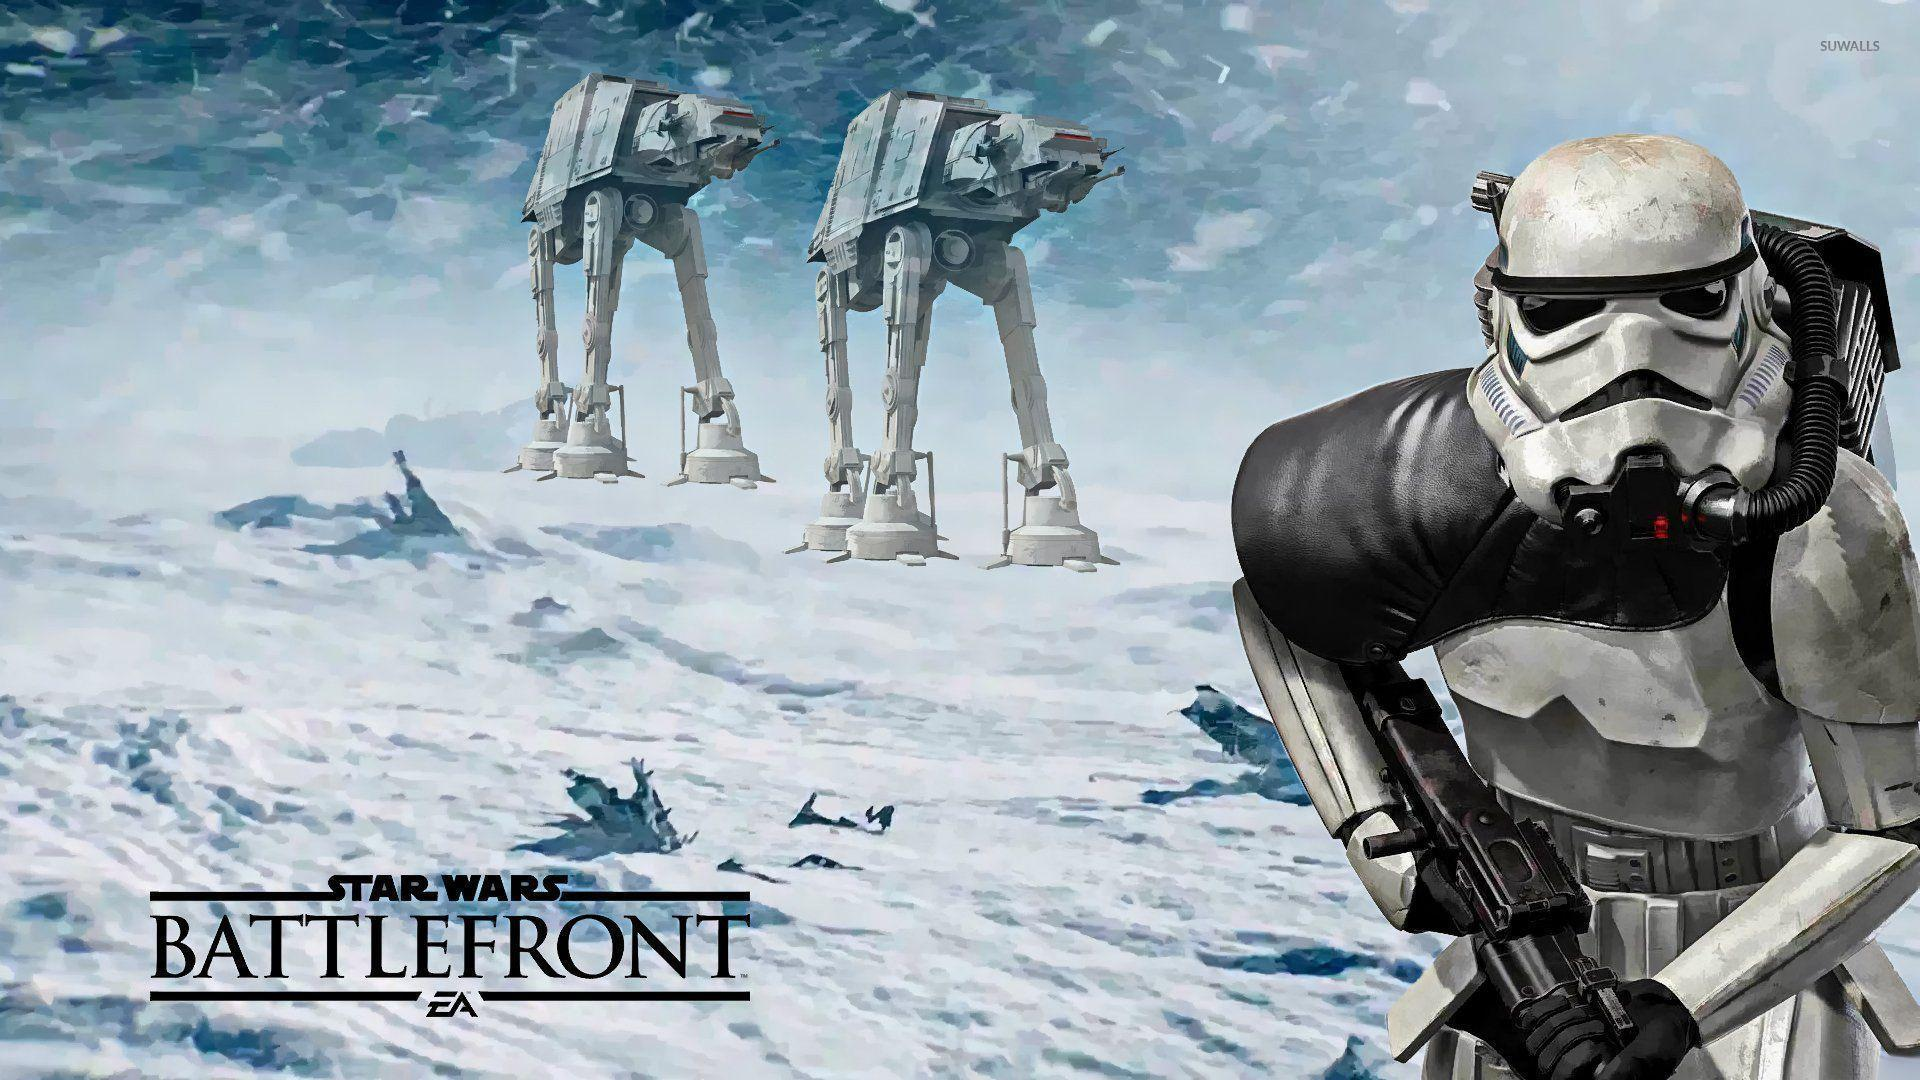 Darth Vader and Stormtroopers in Star Wars: Battlefront wallpaper ...